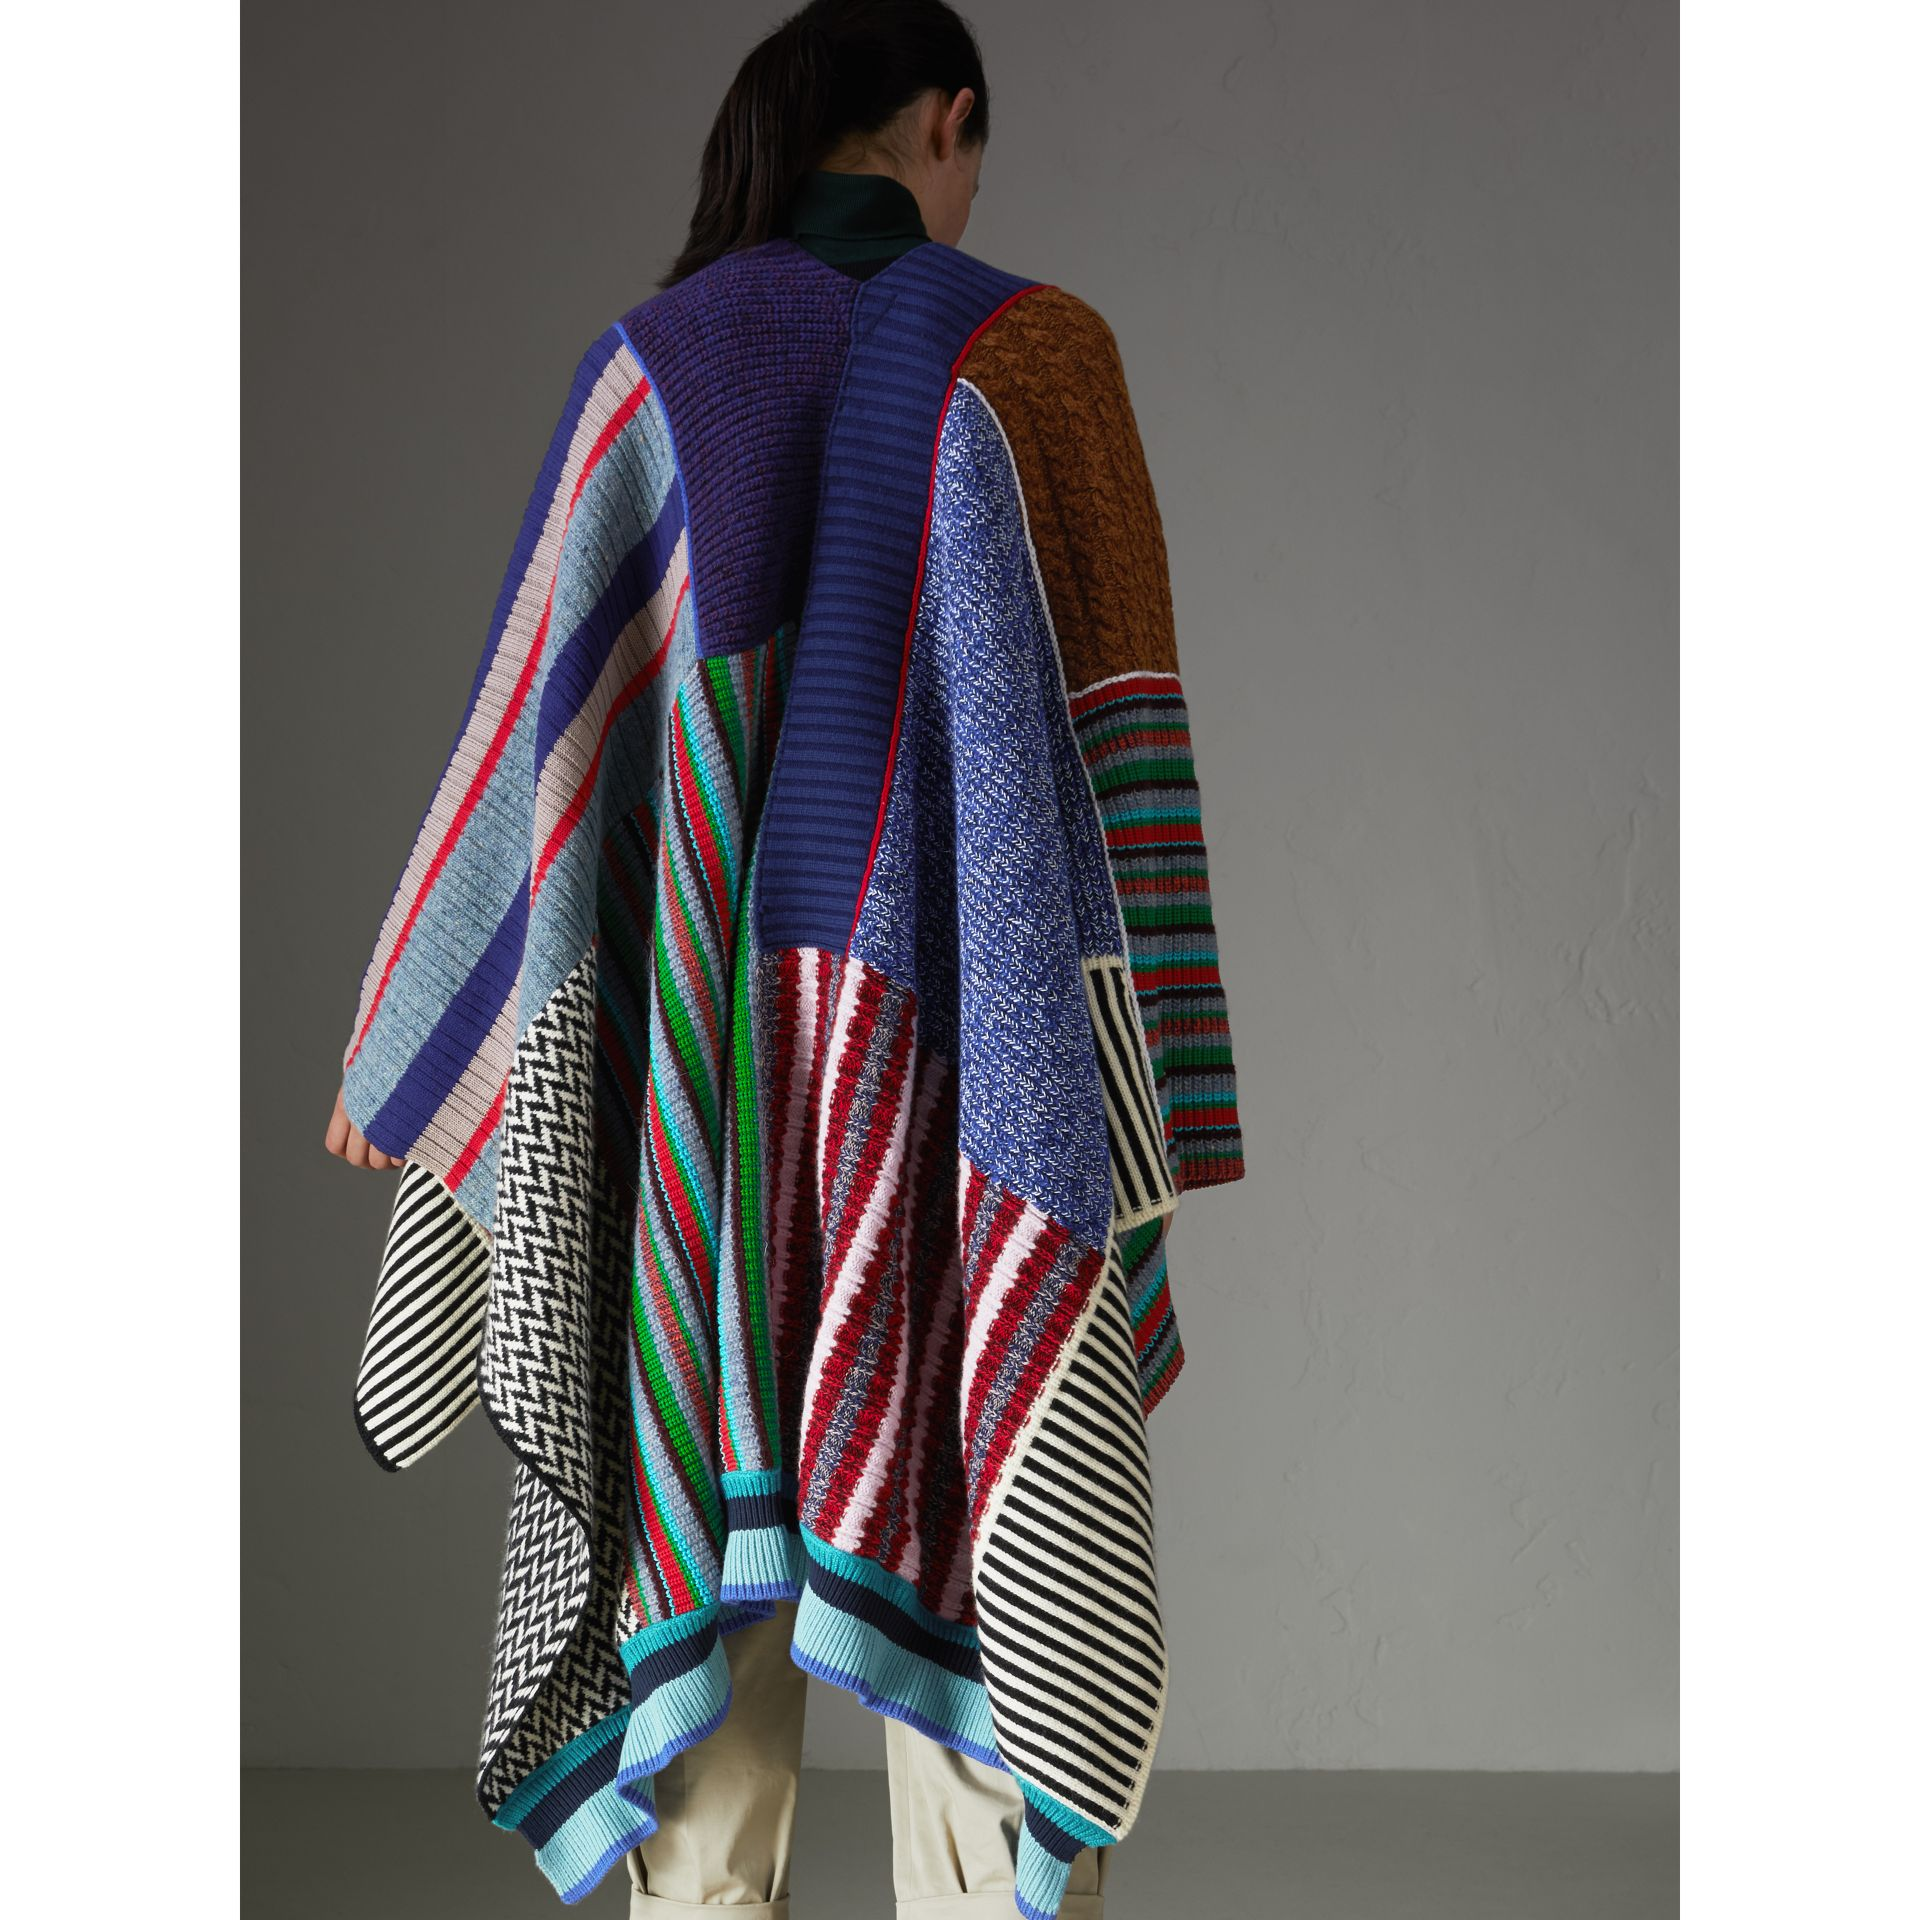 Wool Cashmere Blend Patchwork Poncho in Multicolour - Women | Burberry United States - gallery image 2